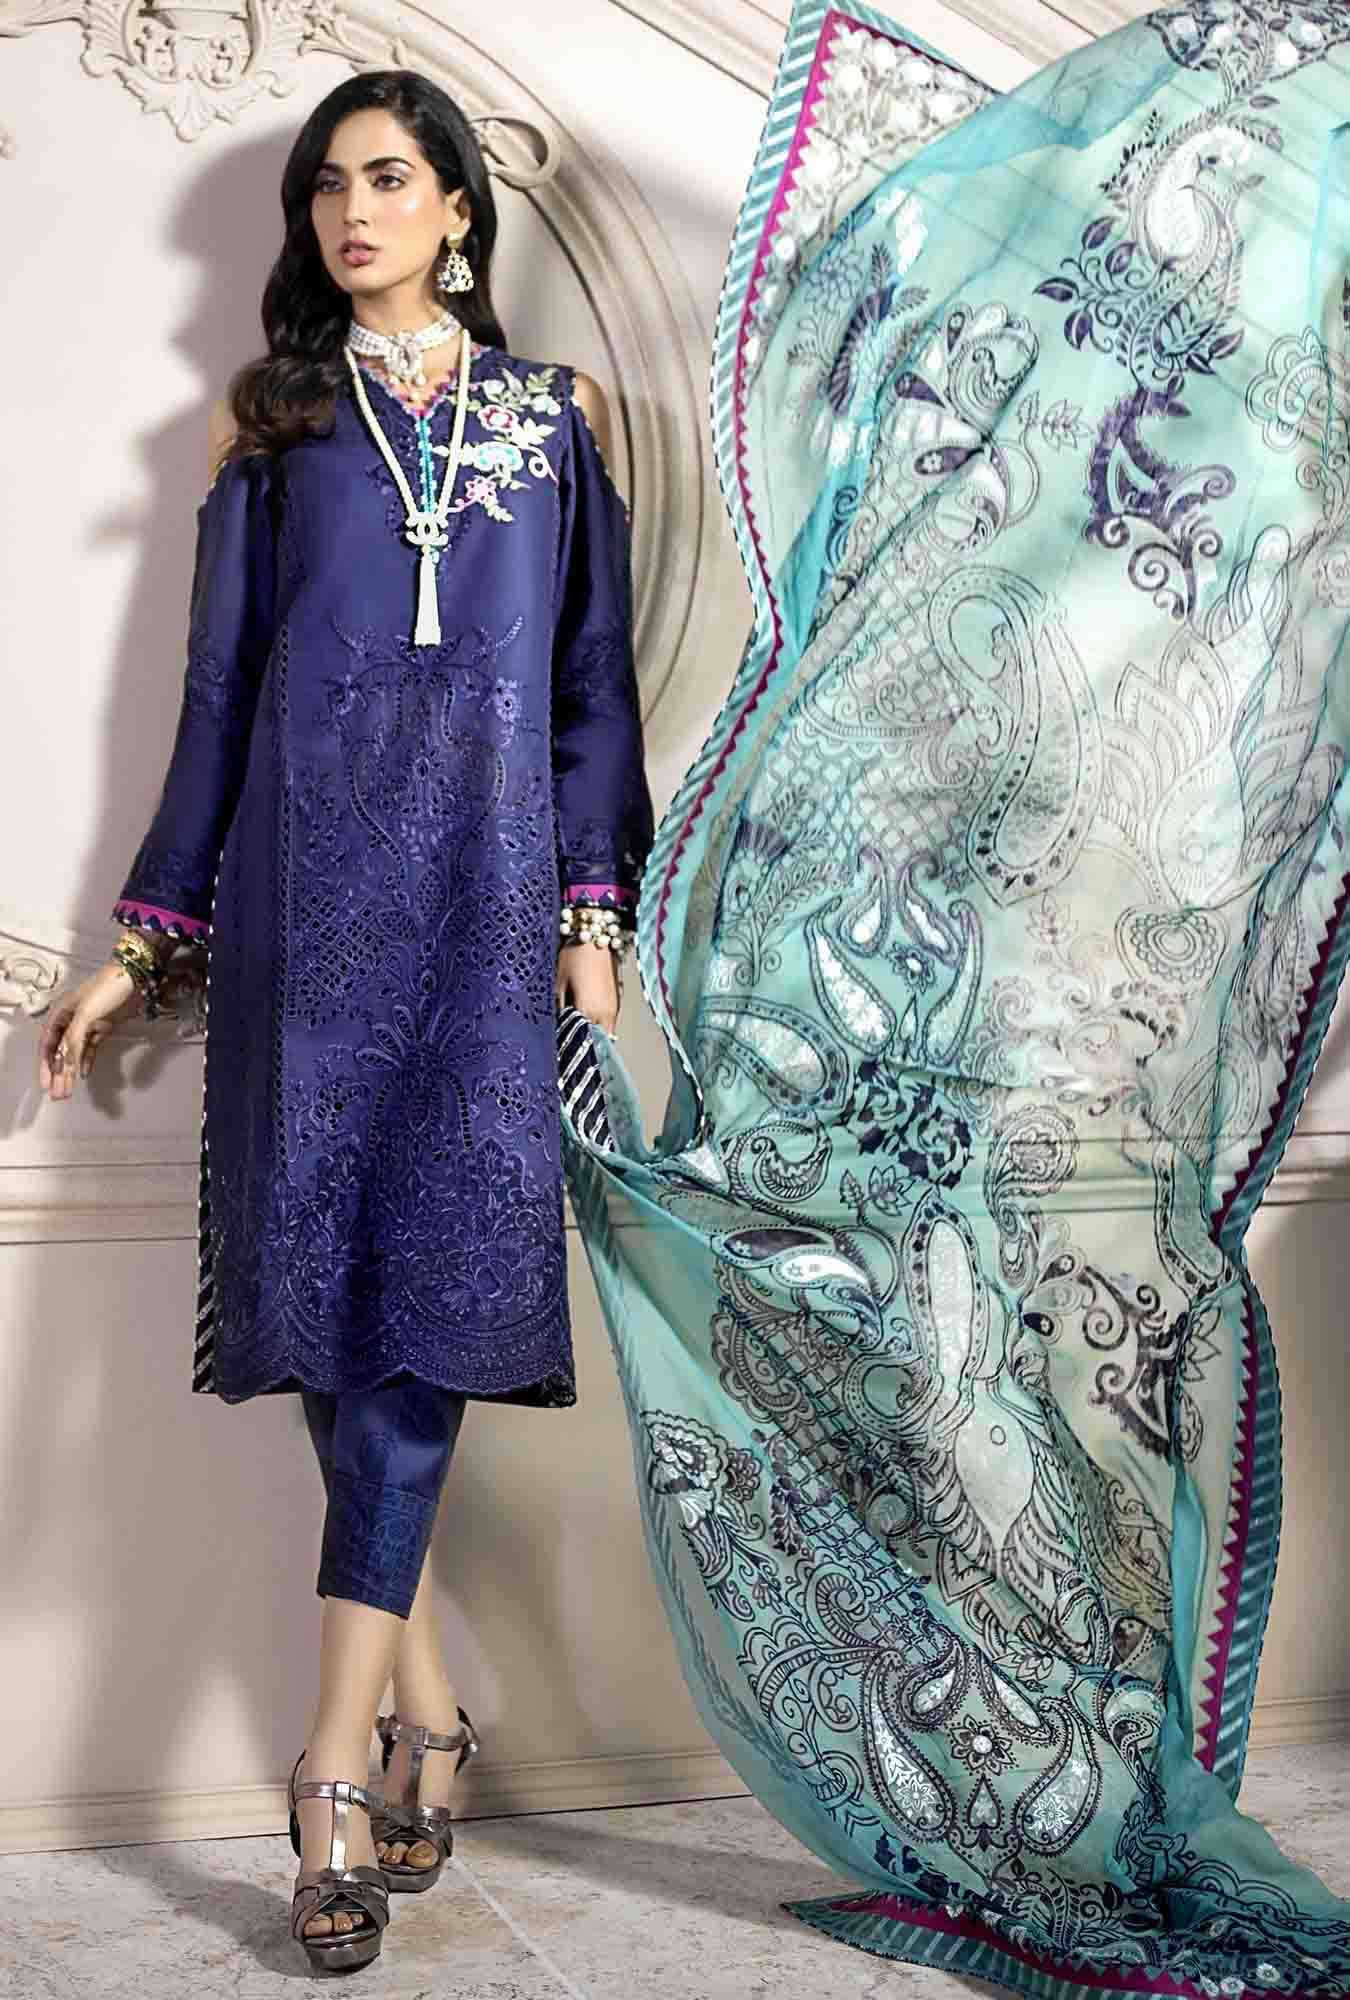 Noor 02-Embroidered 3pc lawn chicken kari dress with printed chiffon dupatta. - gracestore.pk